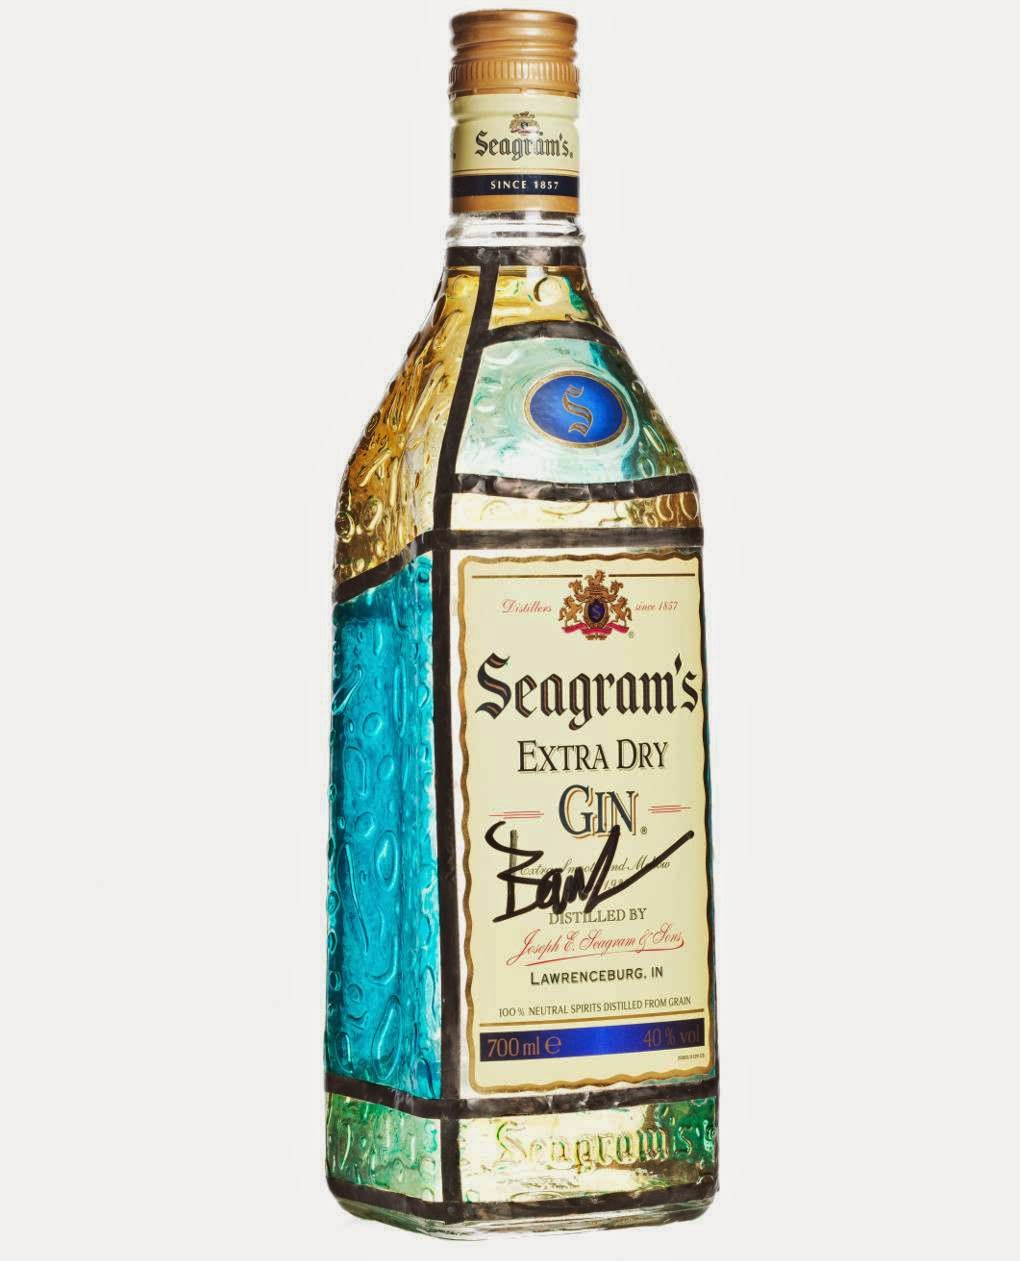 BOTELLA SEAGRAMS GIN BY BARUC CORAZON